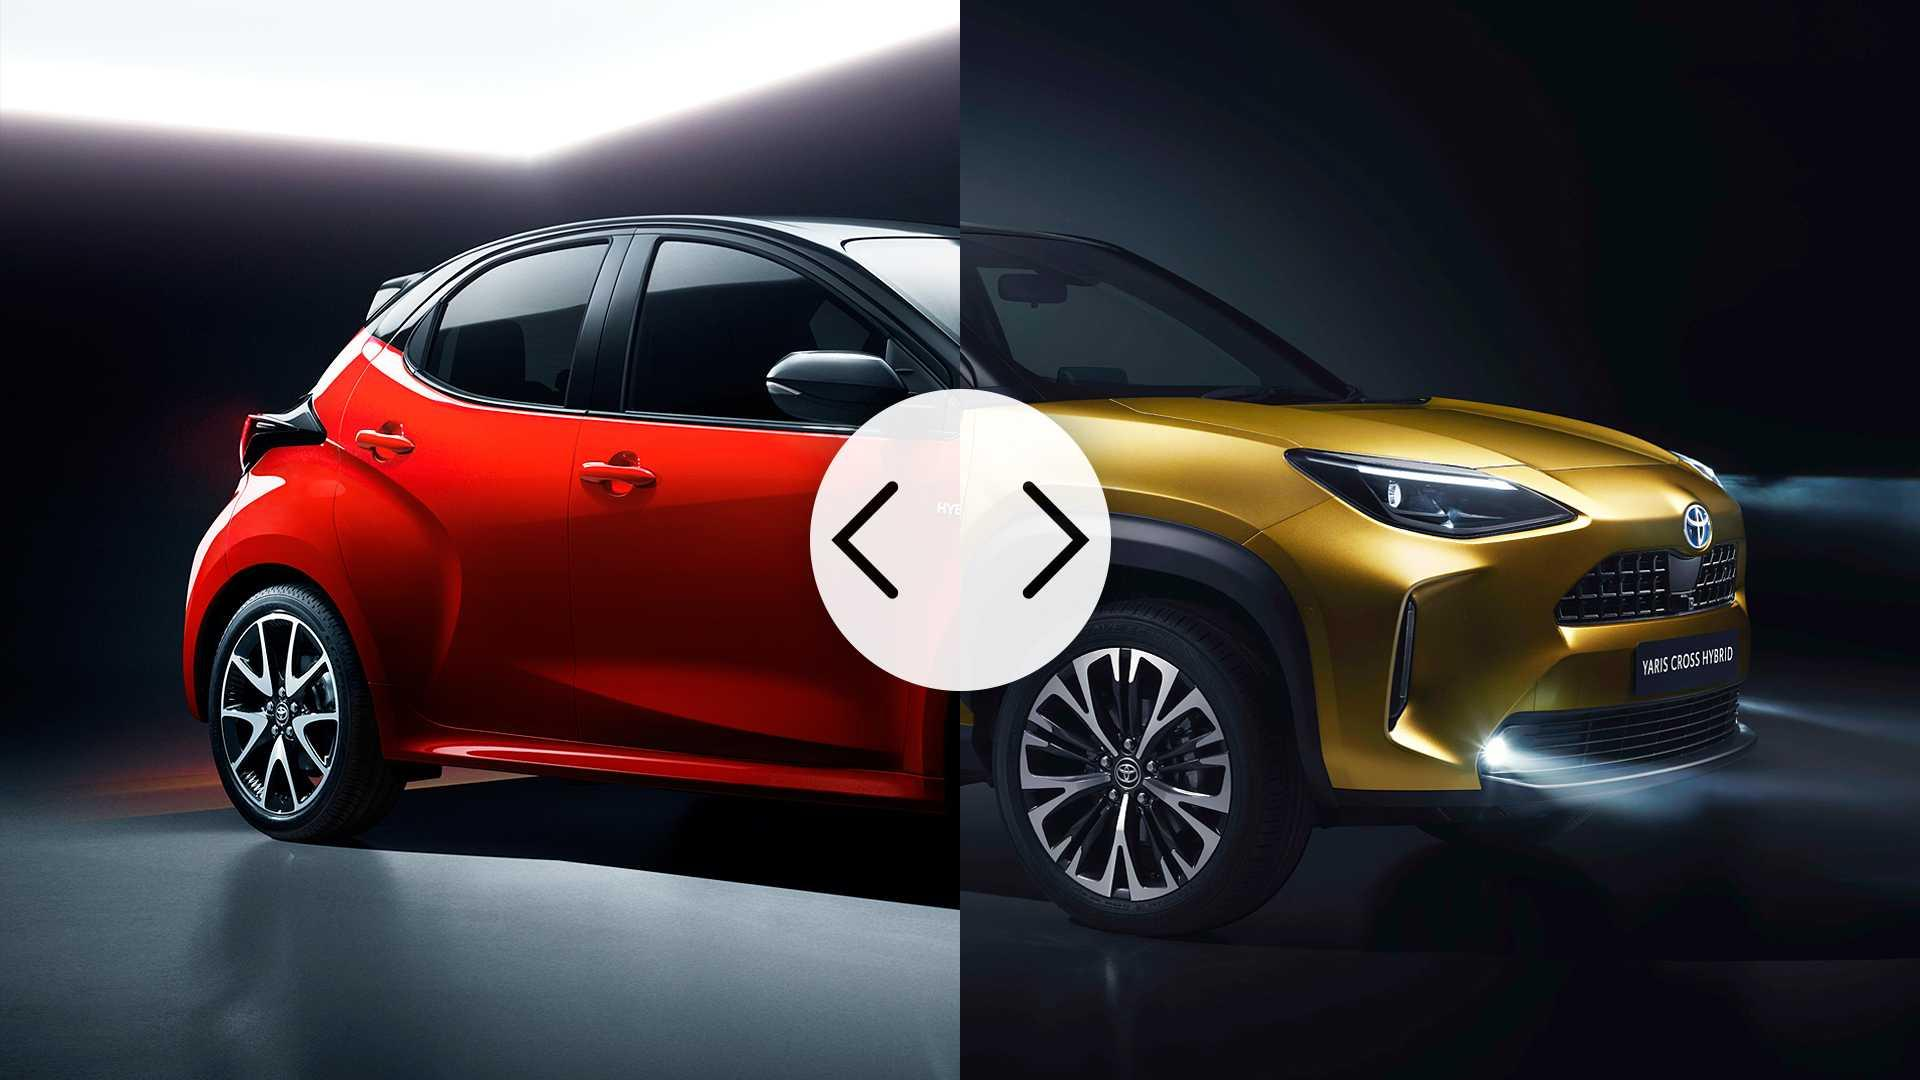 What Changes Between Car And Crossover?